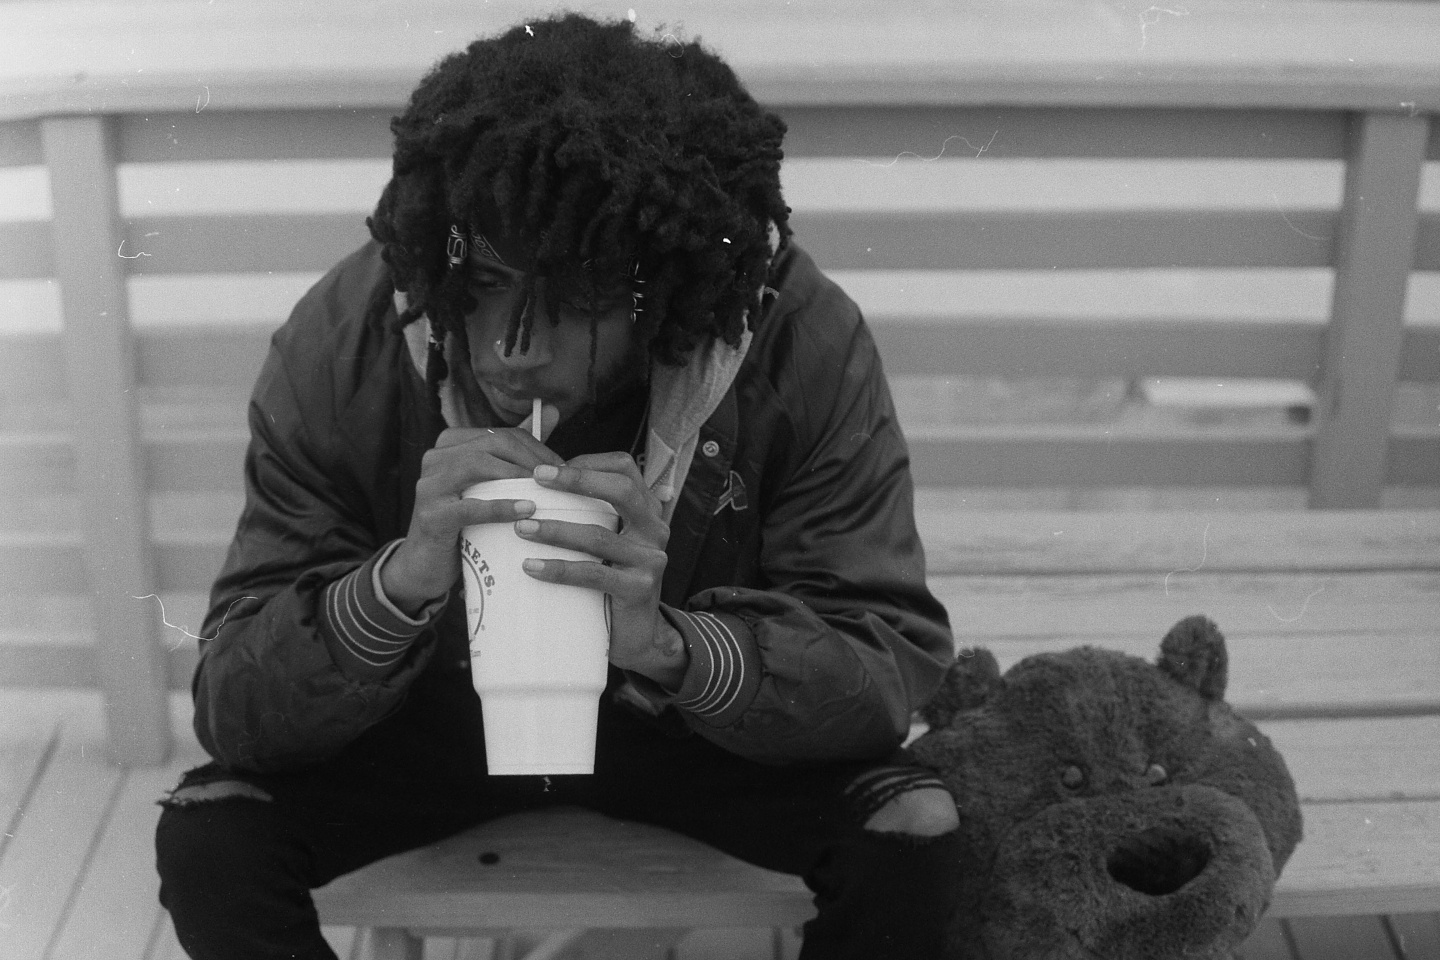 Meet 6LACK, The Atlanta R&B Singer Making Monochrome Songs About Freedom